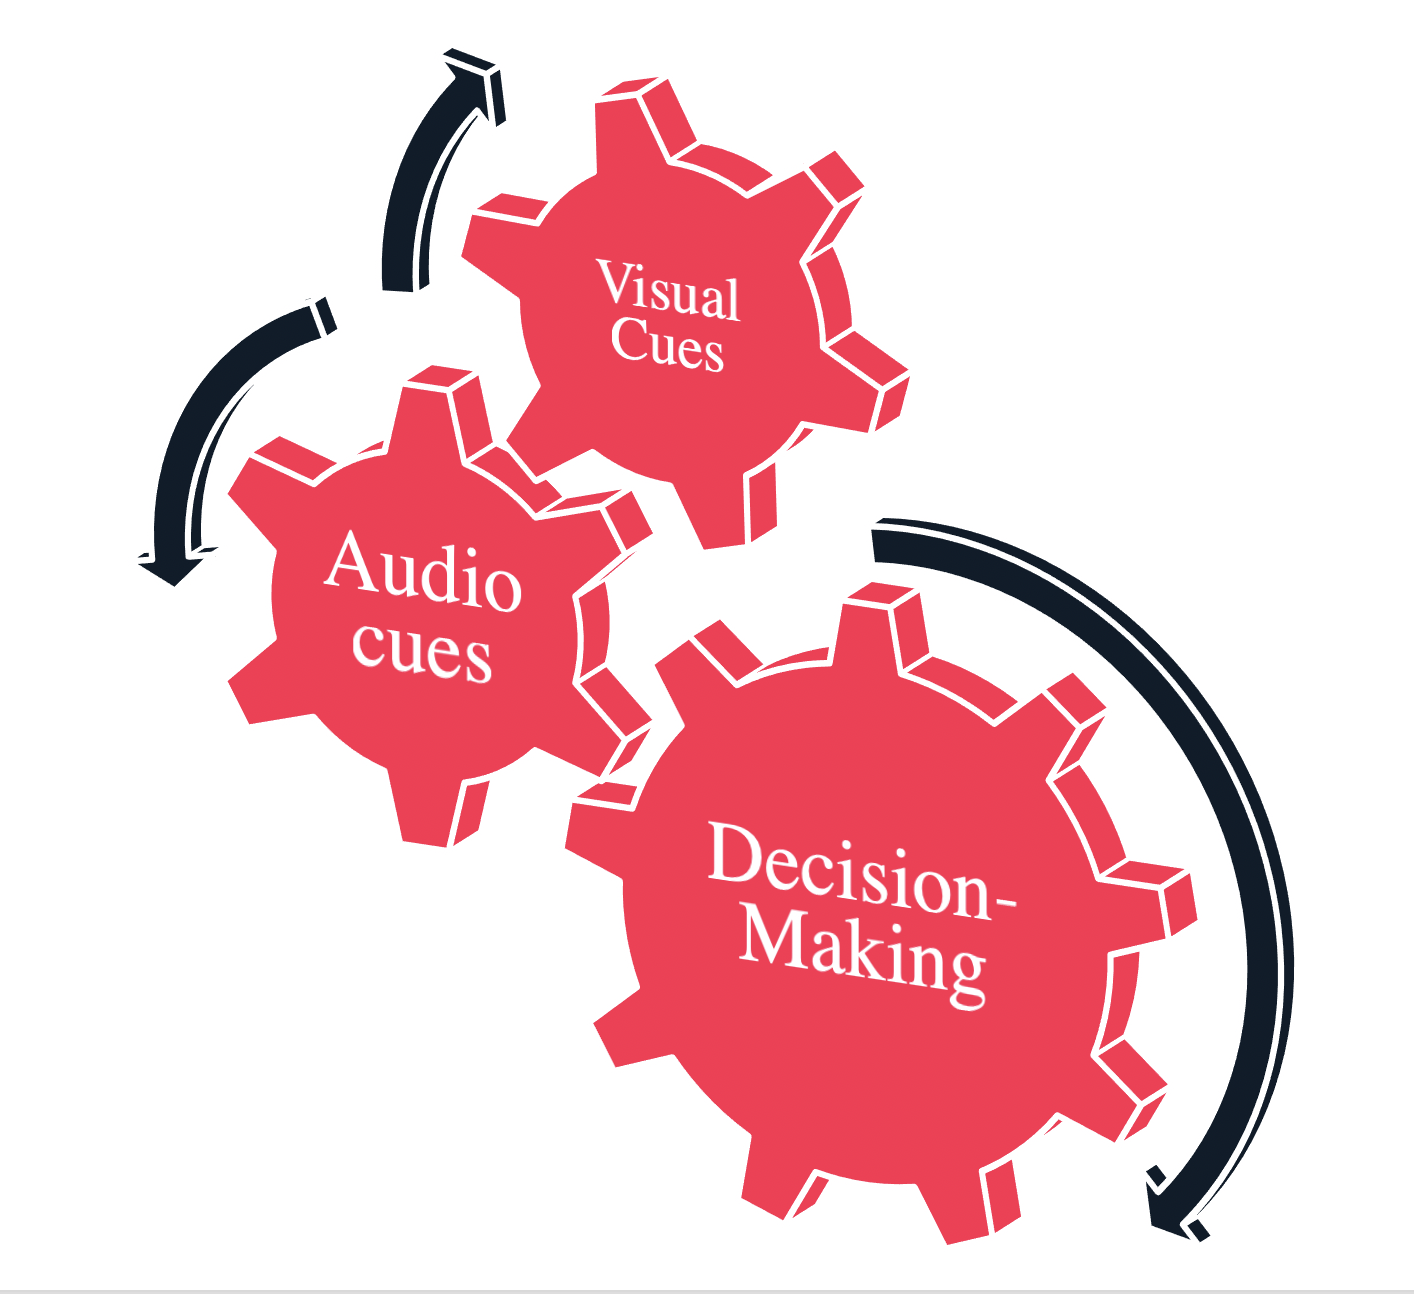 Gears showing: visual cues, audio cues, and decision-making being intertwined